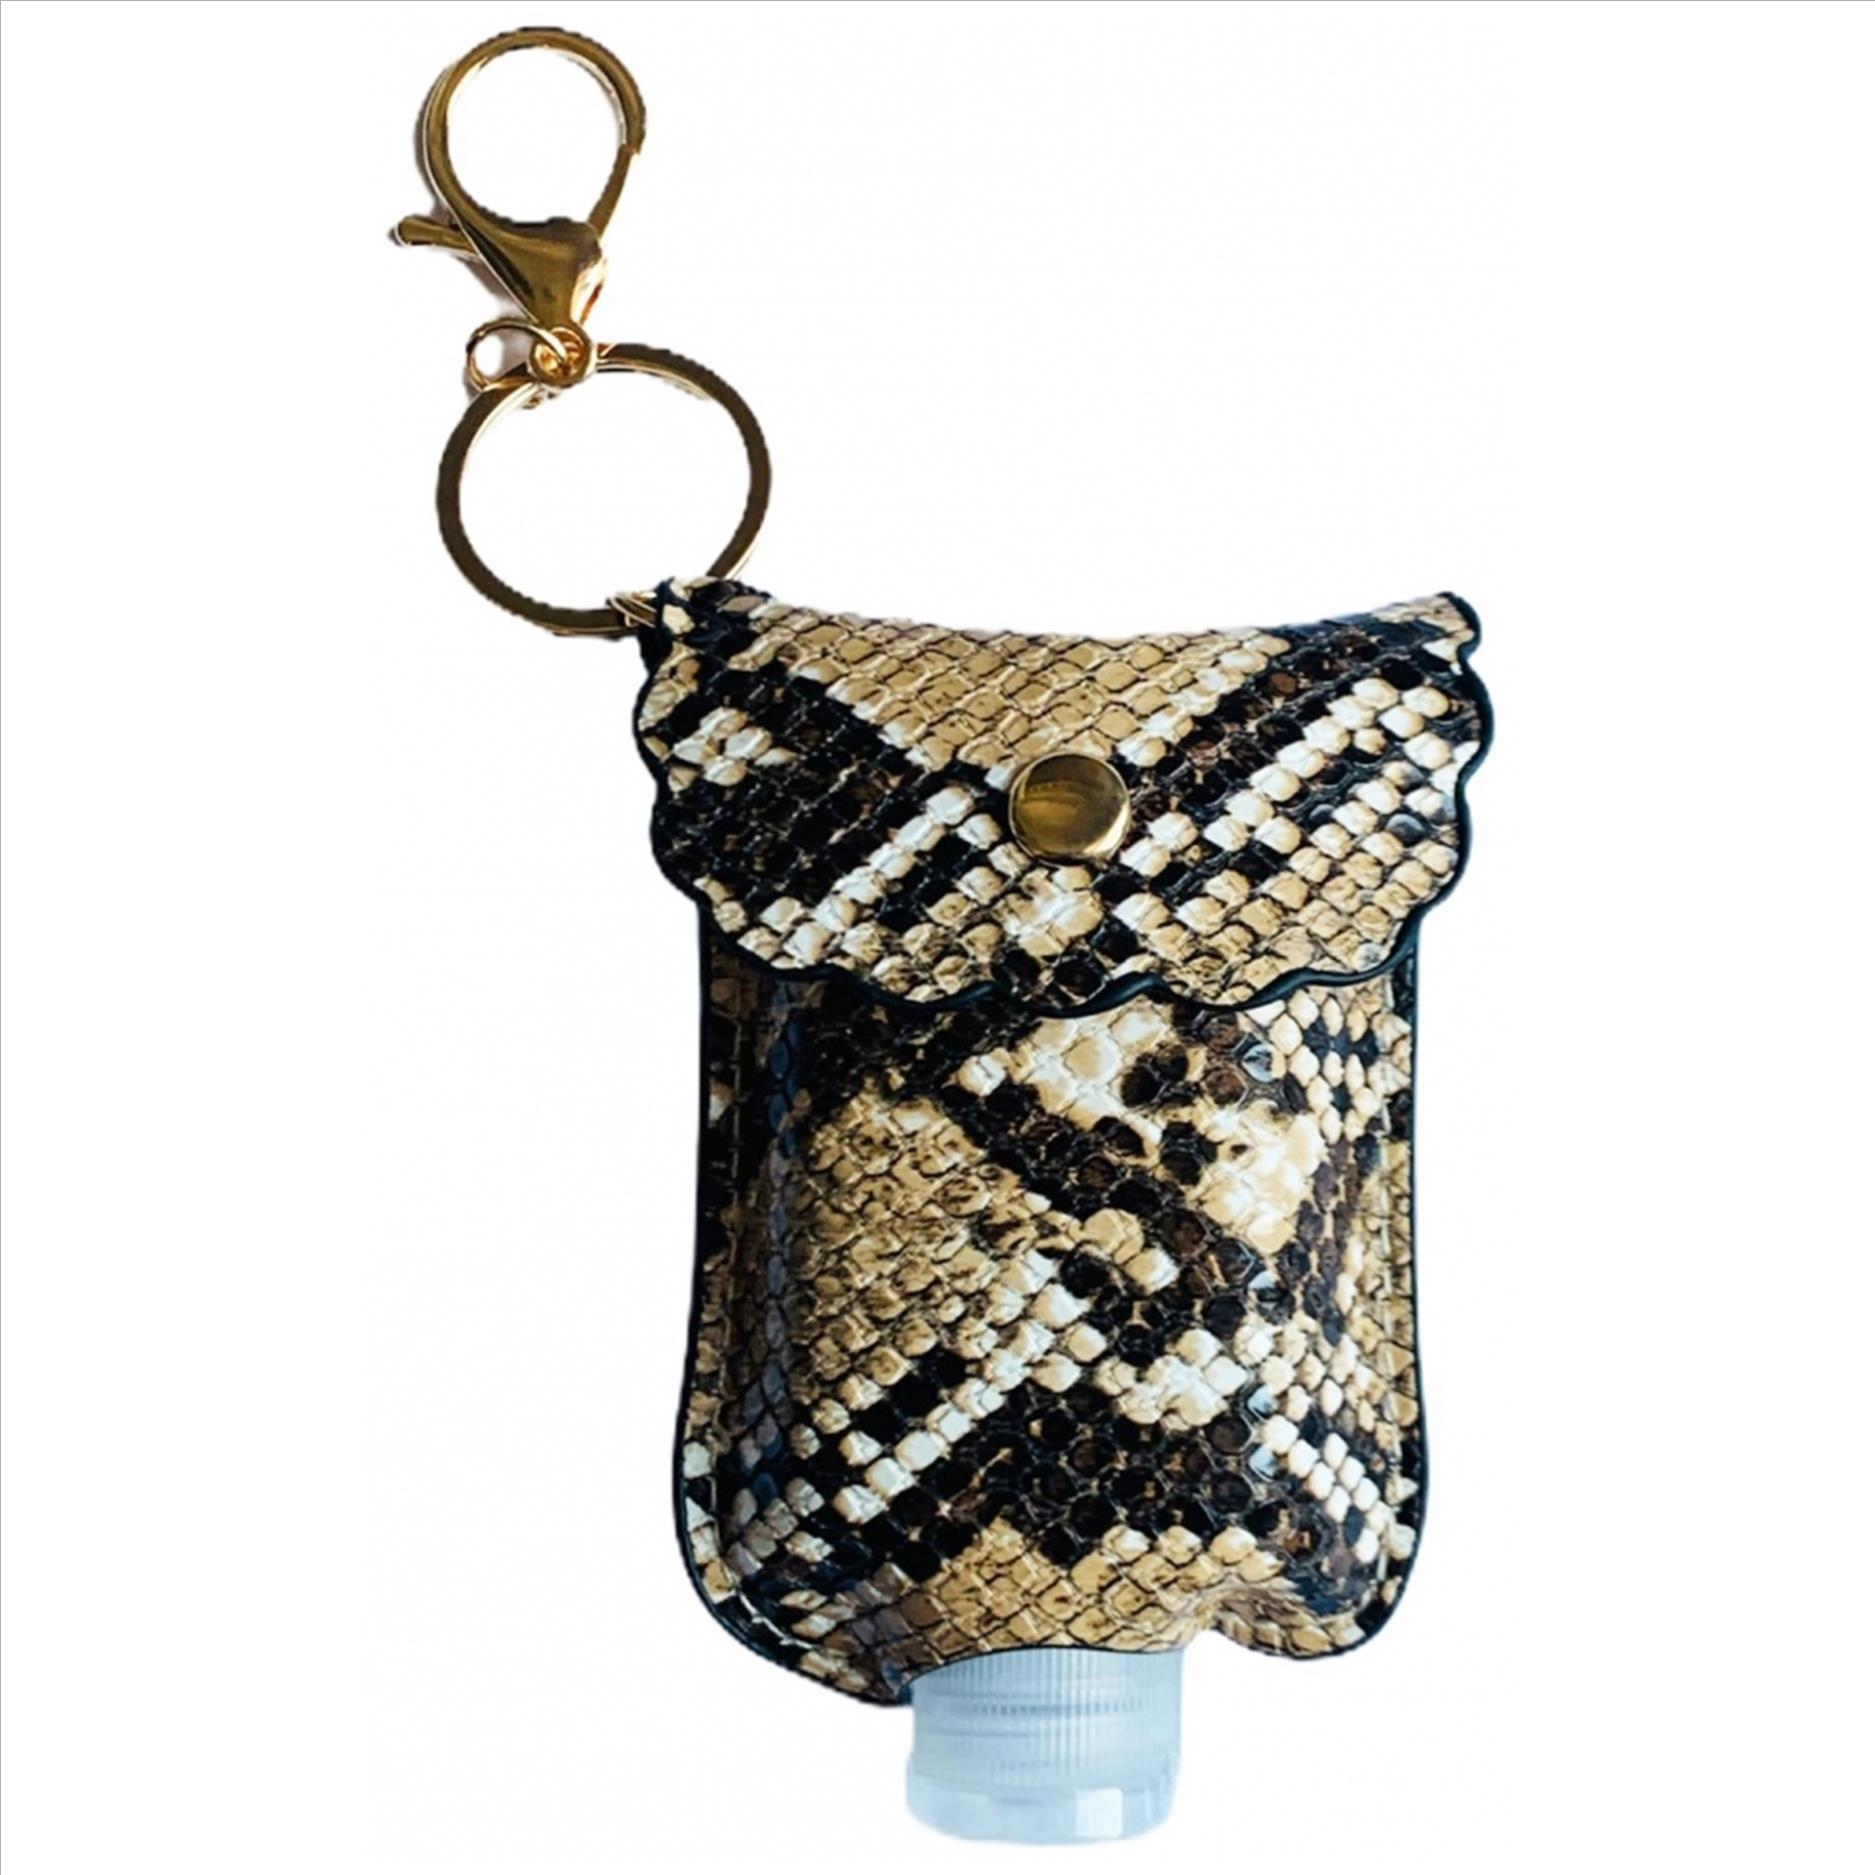 Mini Sanitizer Holder and Key Chain - Snake Print